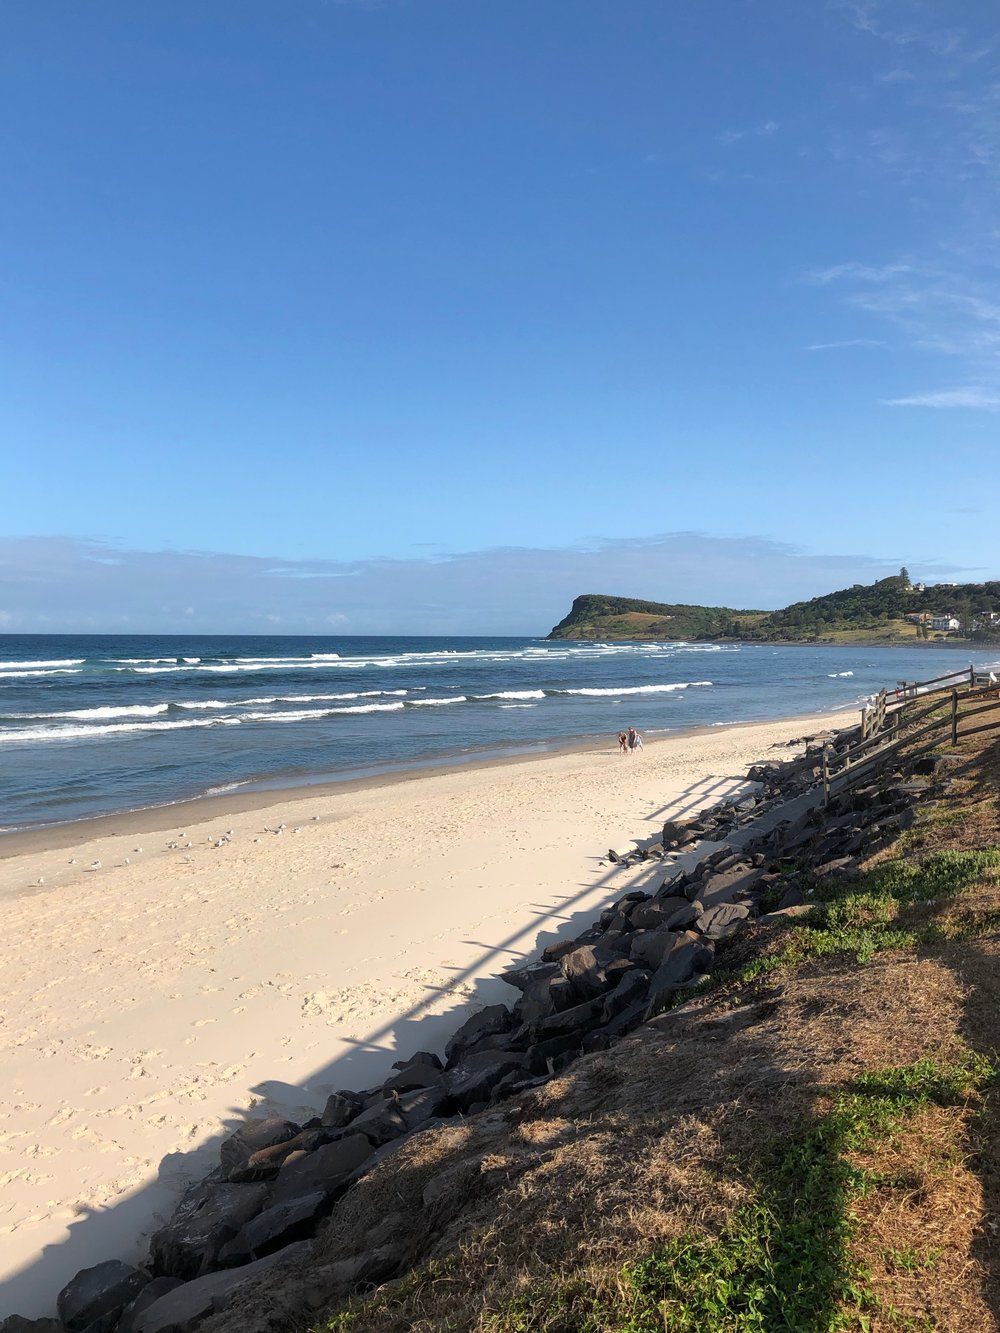 Lennox Head is worth a visit